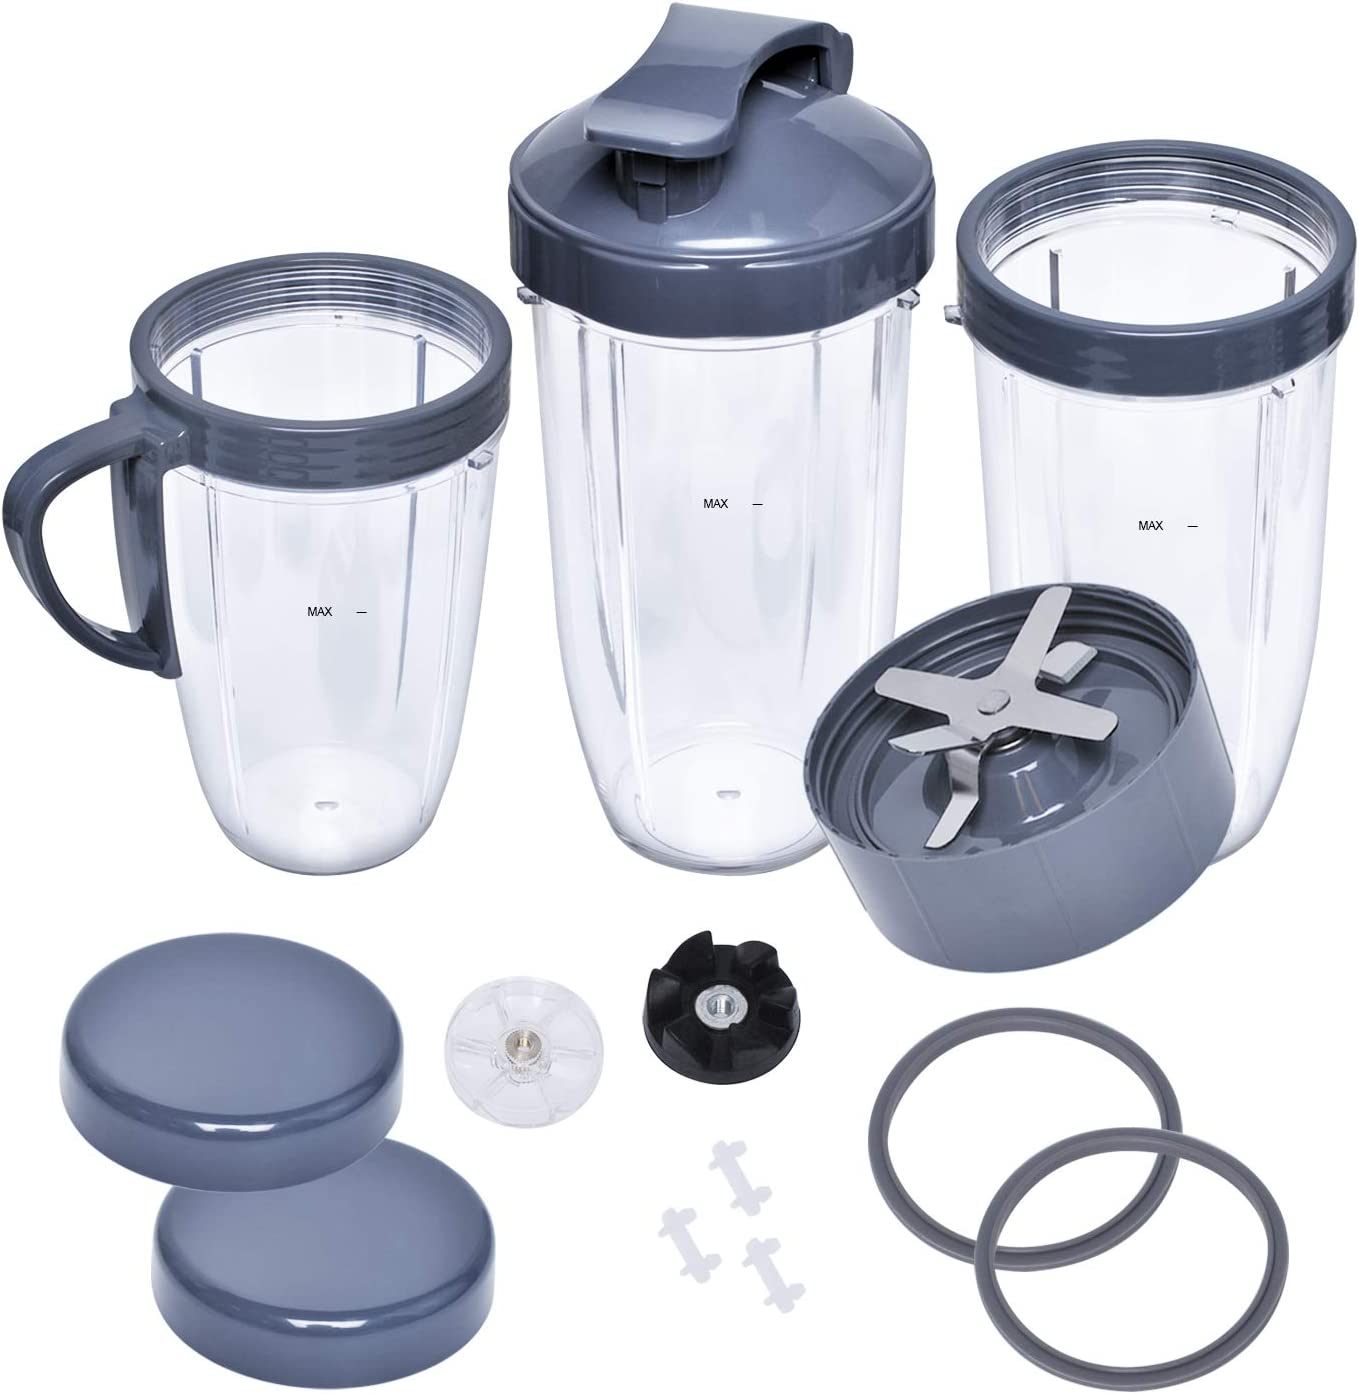 Upgraded Accessories Compatible with Nutribullet Blade & Lids & Gear Set & Gaskets & Shock Pad & 18/24/32oz Cups Compatible with Nutribullet 600W/900W High-Speed Juicer Blender Replacement Parts